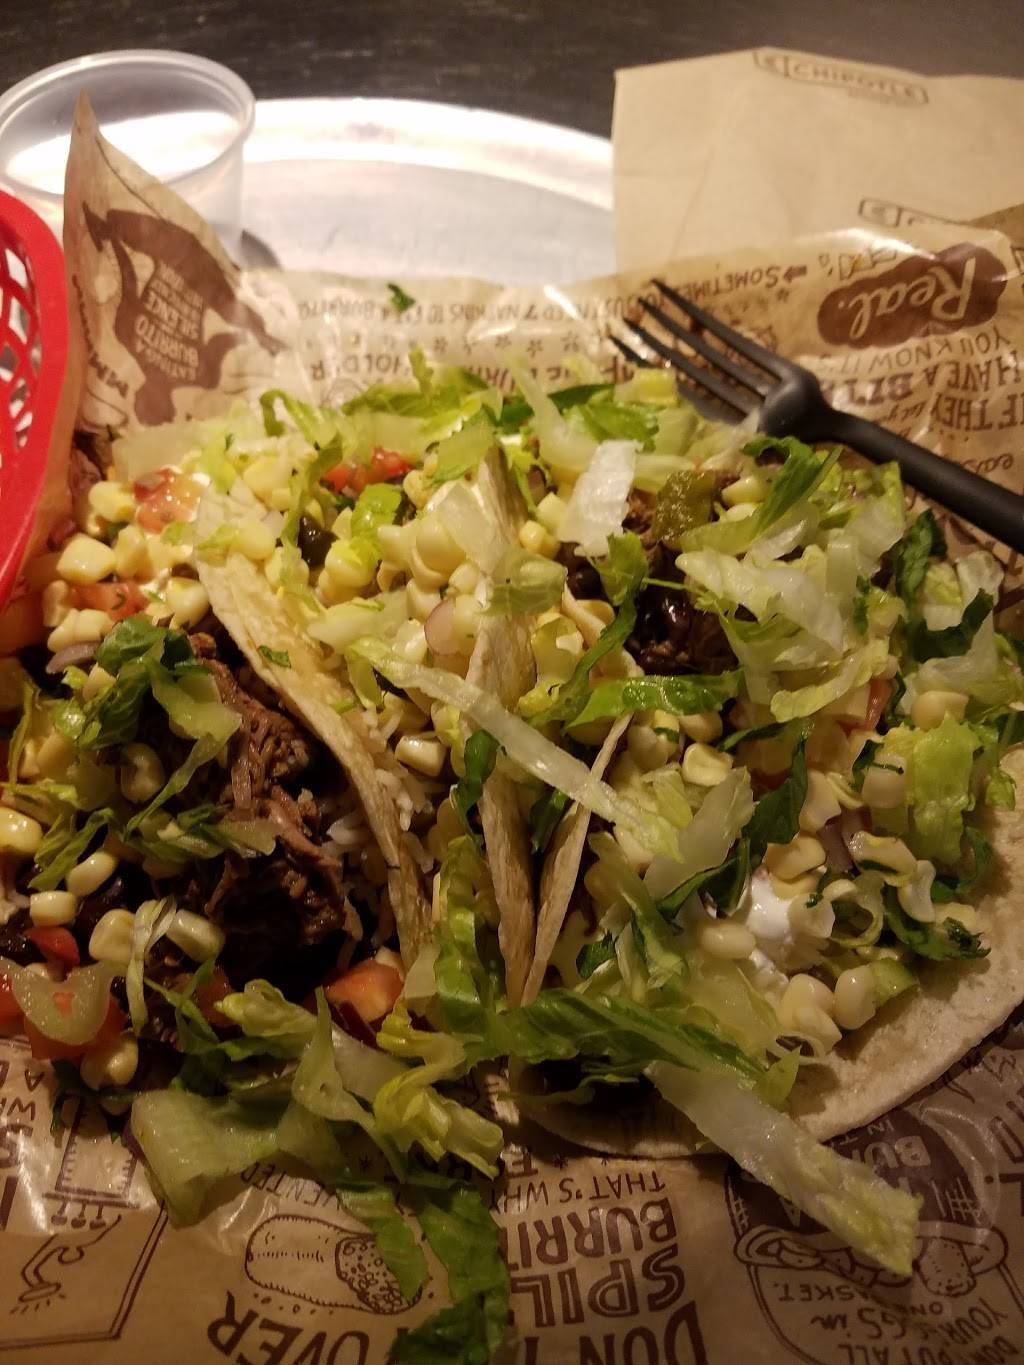 Chipotle Mexican Grill | restaurant | 1288 1st Avenue, New York, NY 10021, USA | 6462139431 OR +1 646-213-9431